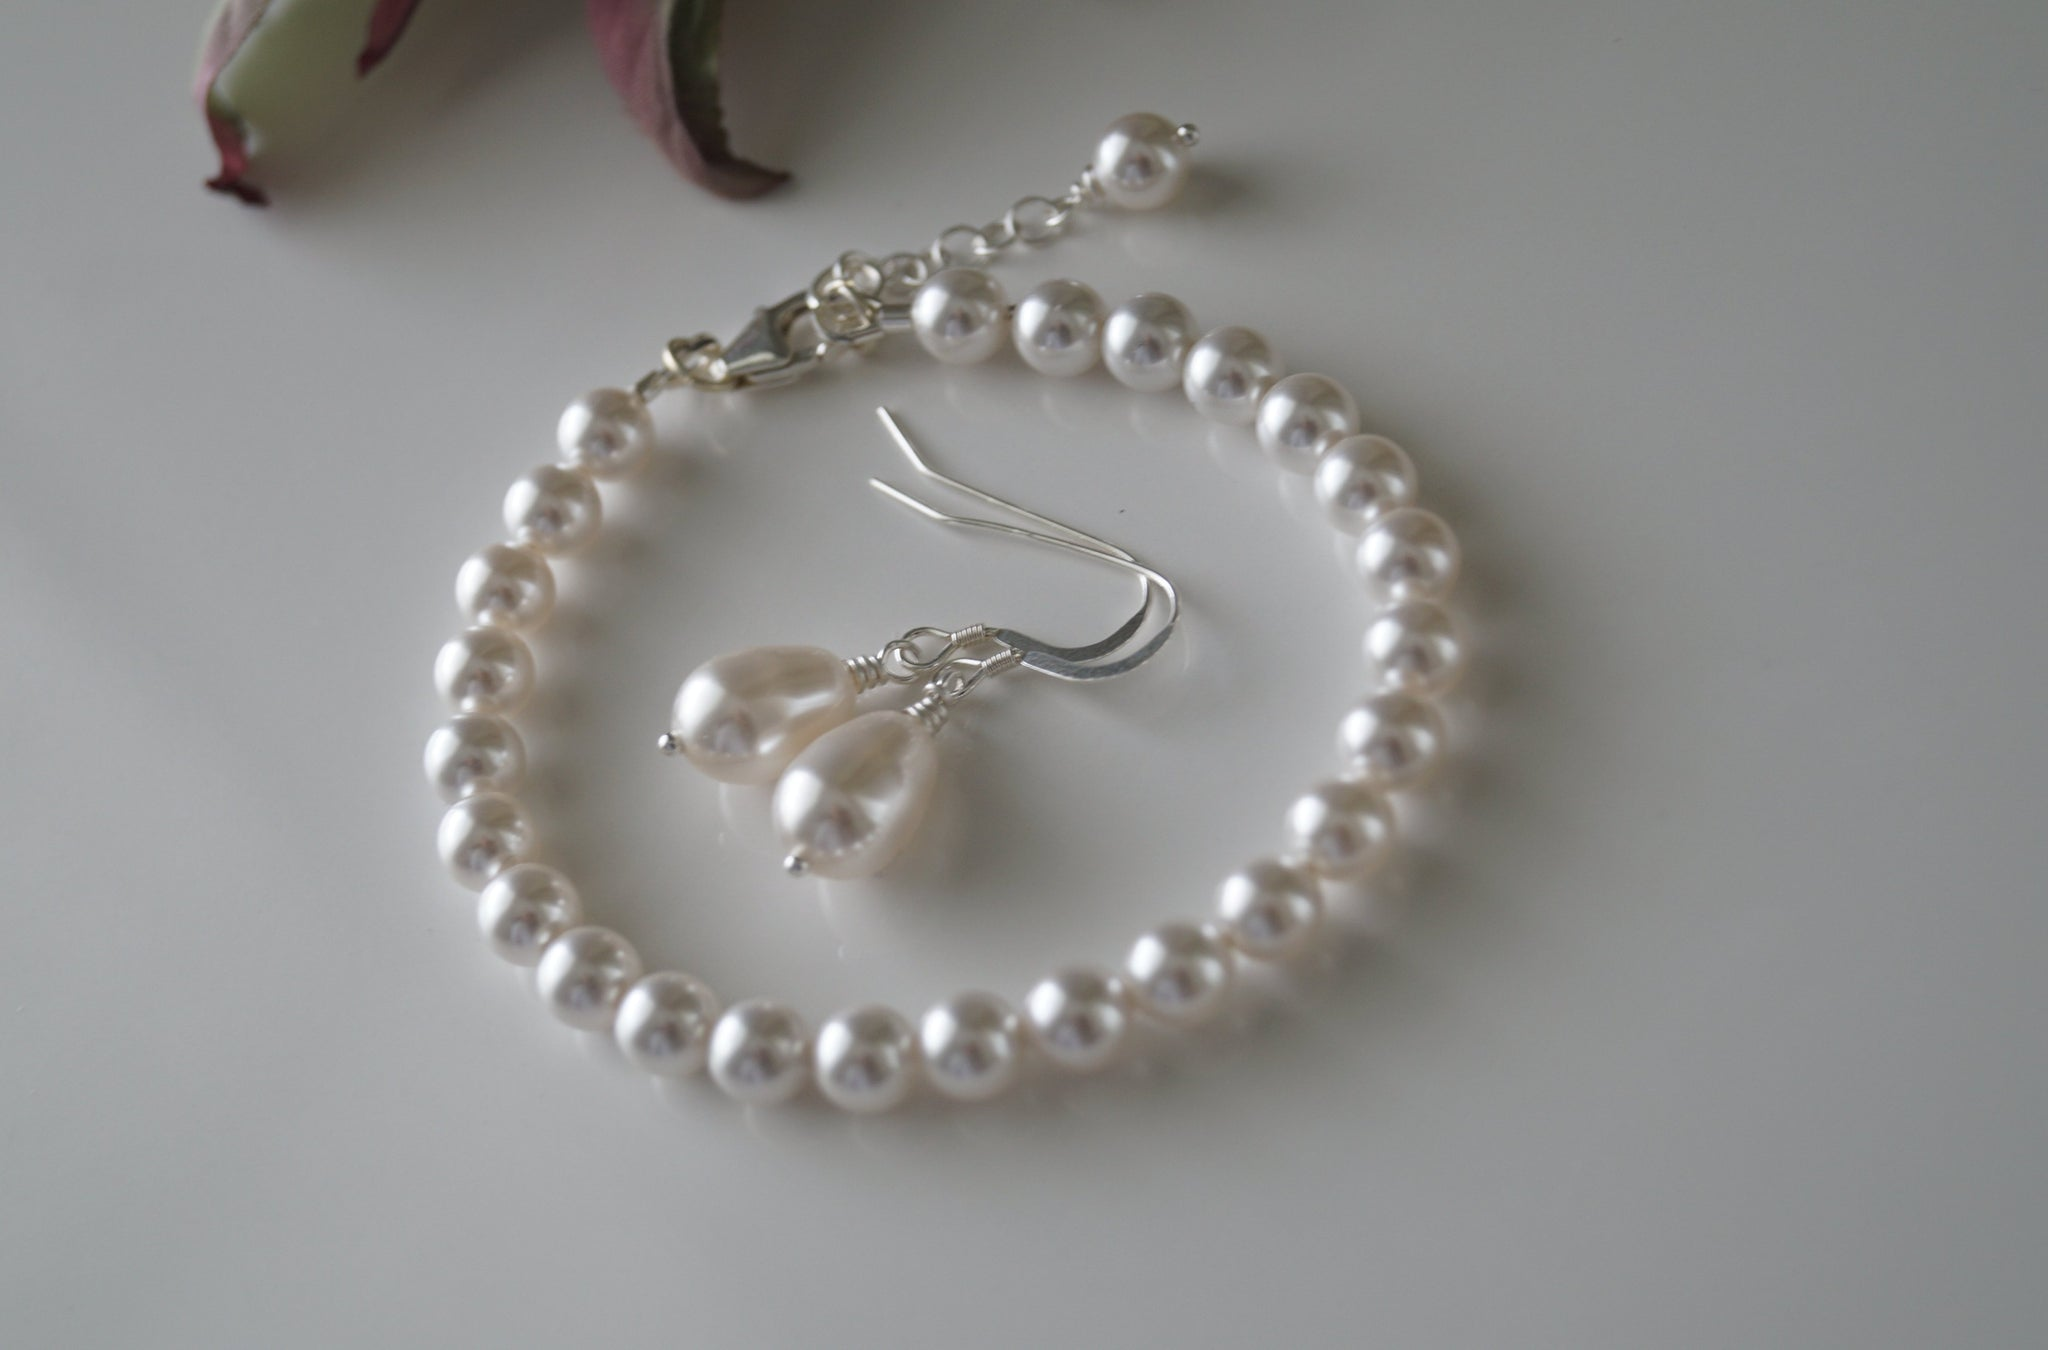 Bridal Jewelry Set White Pearl Bracelet and Earring Set - Clairesbridal - 4